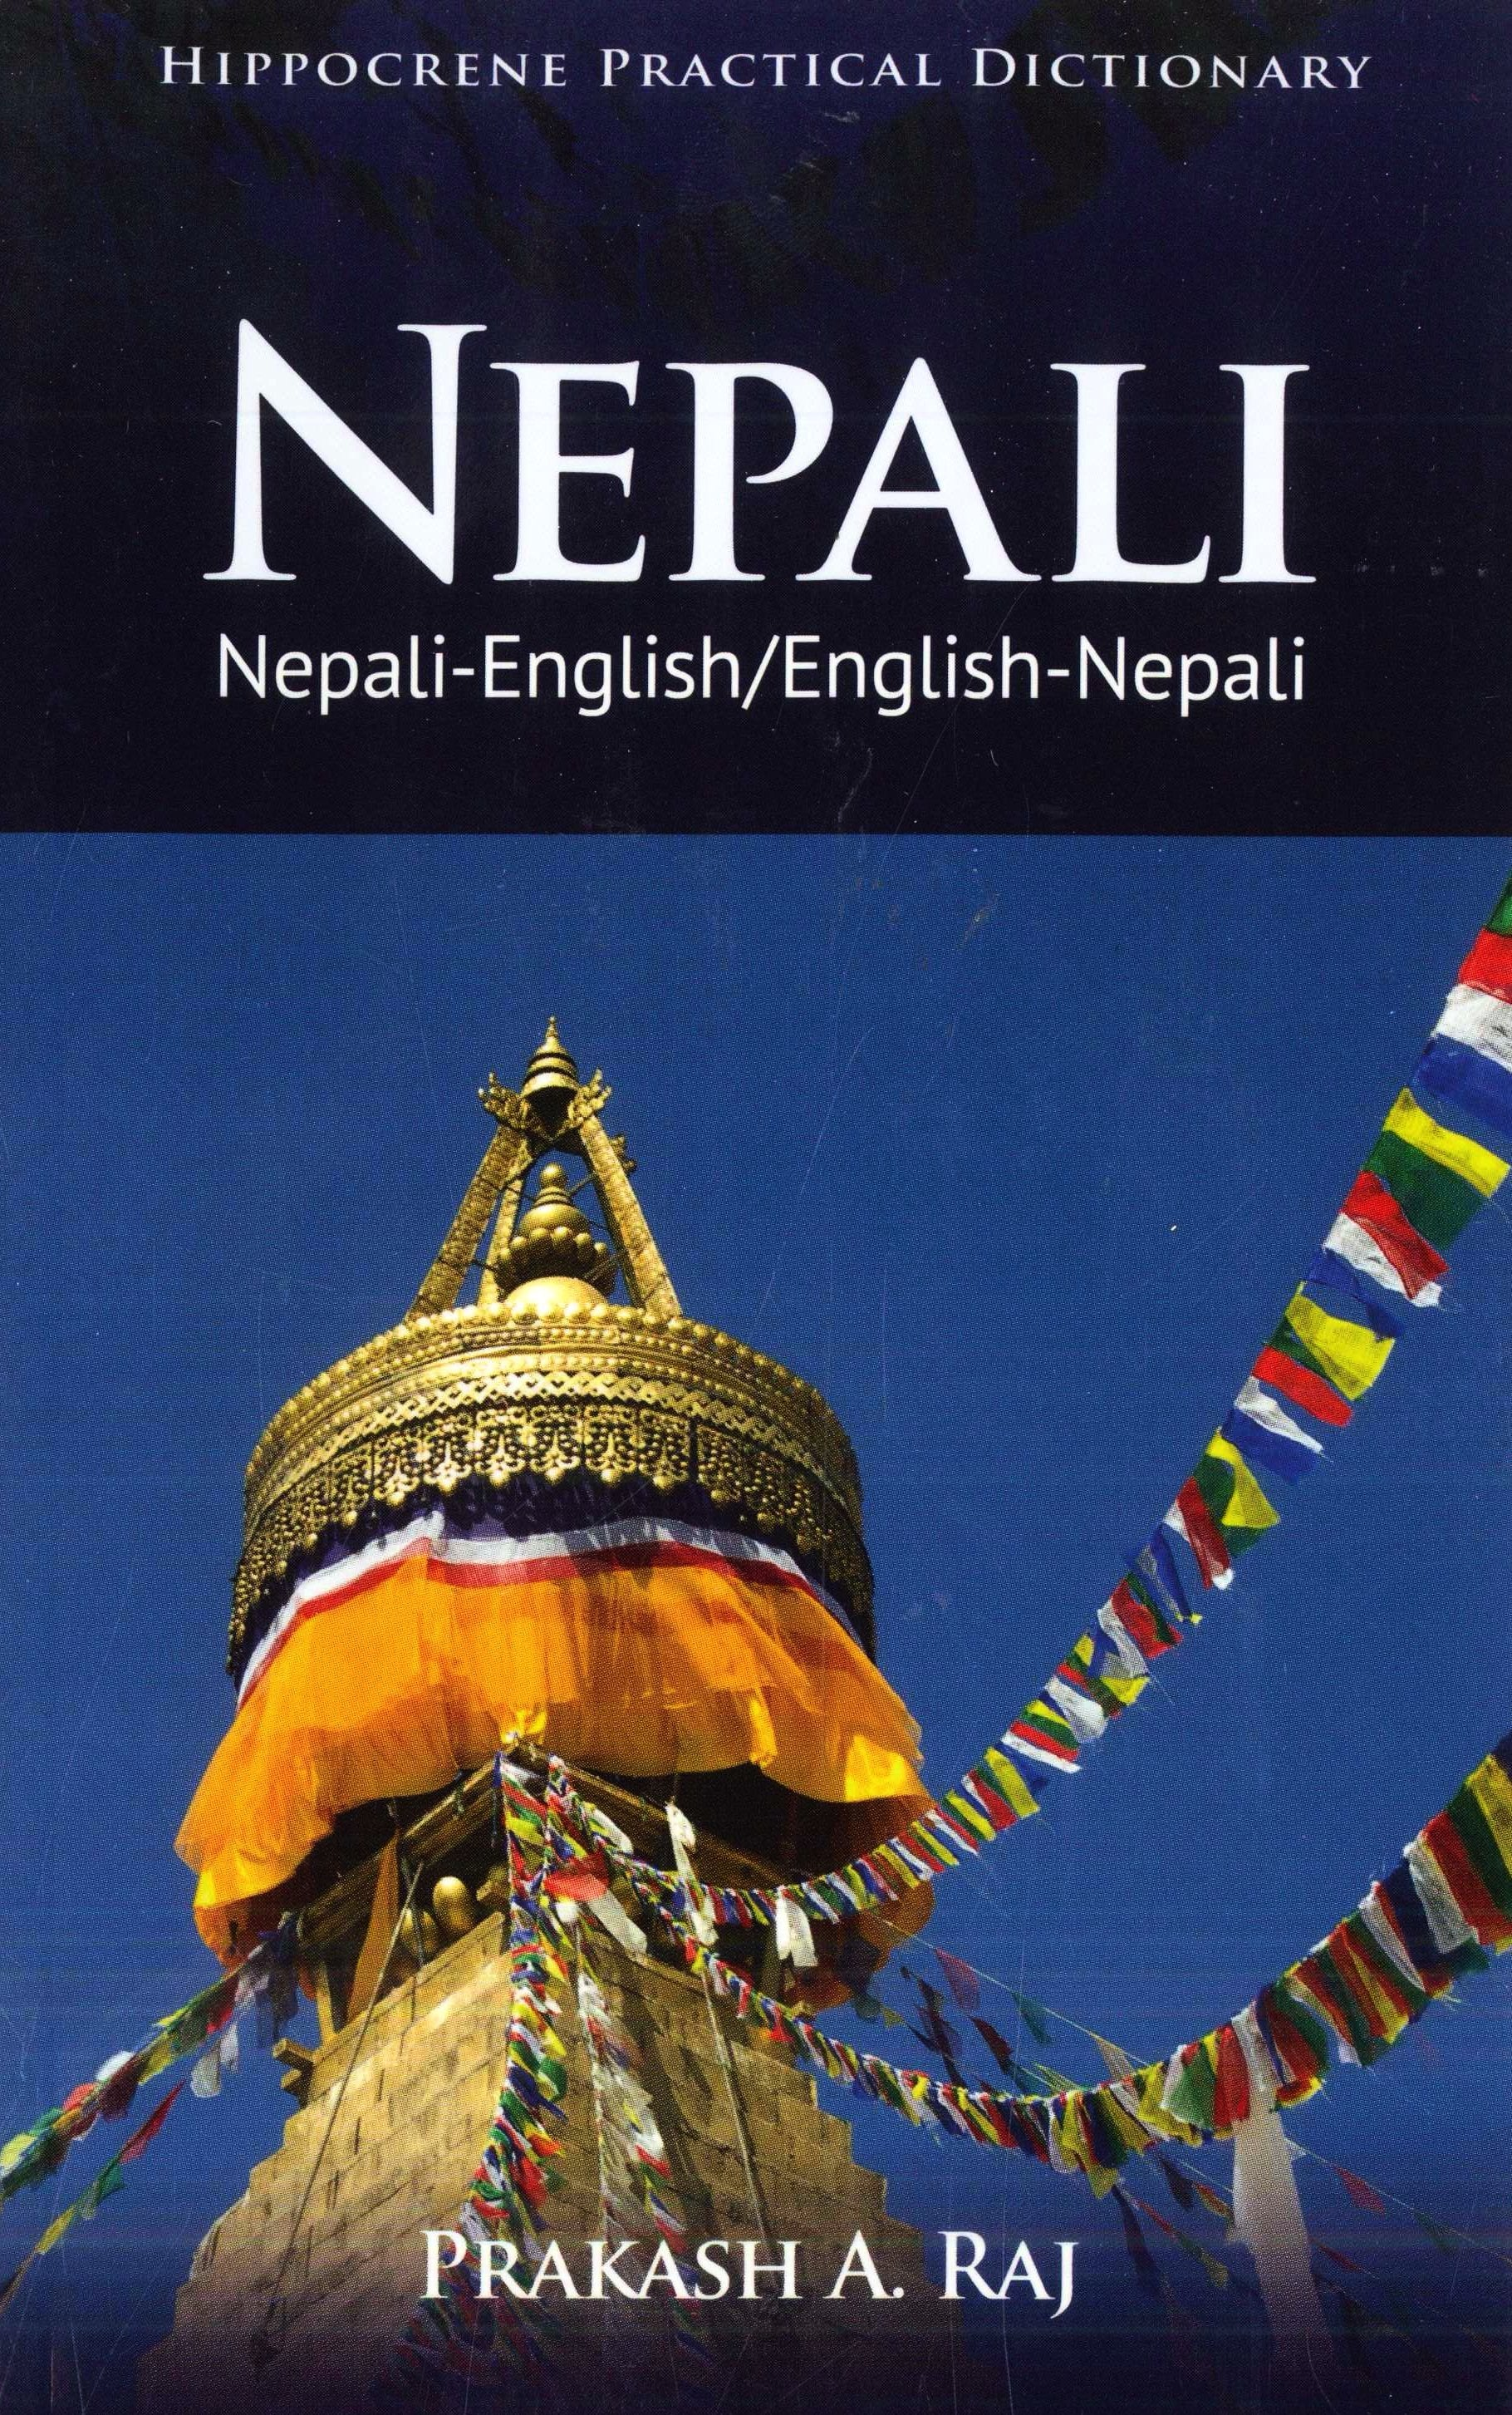 Nepali Practical Dictionary - Nepali-English & English-Nepali 9780781812719